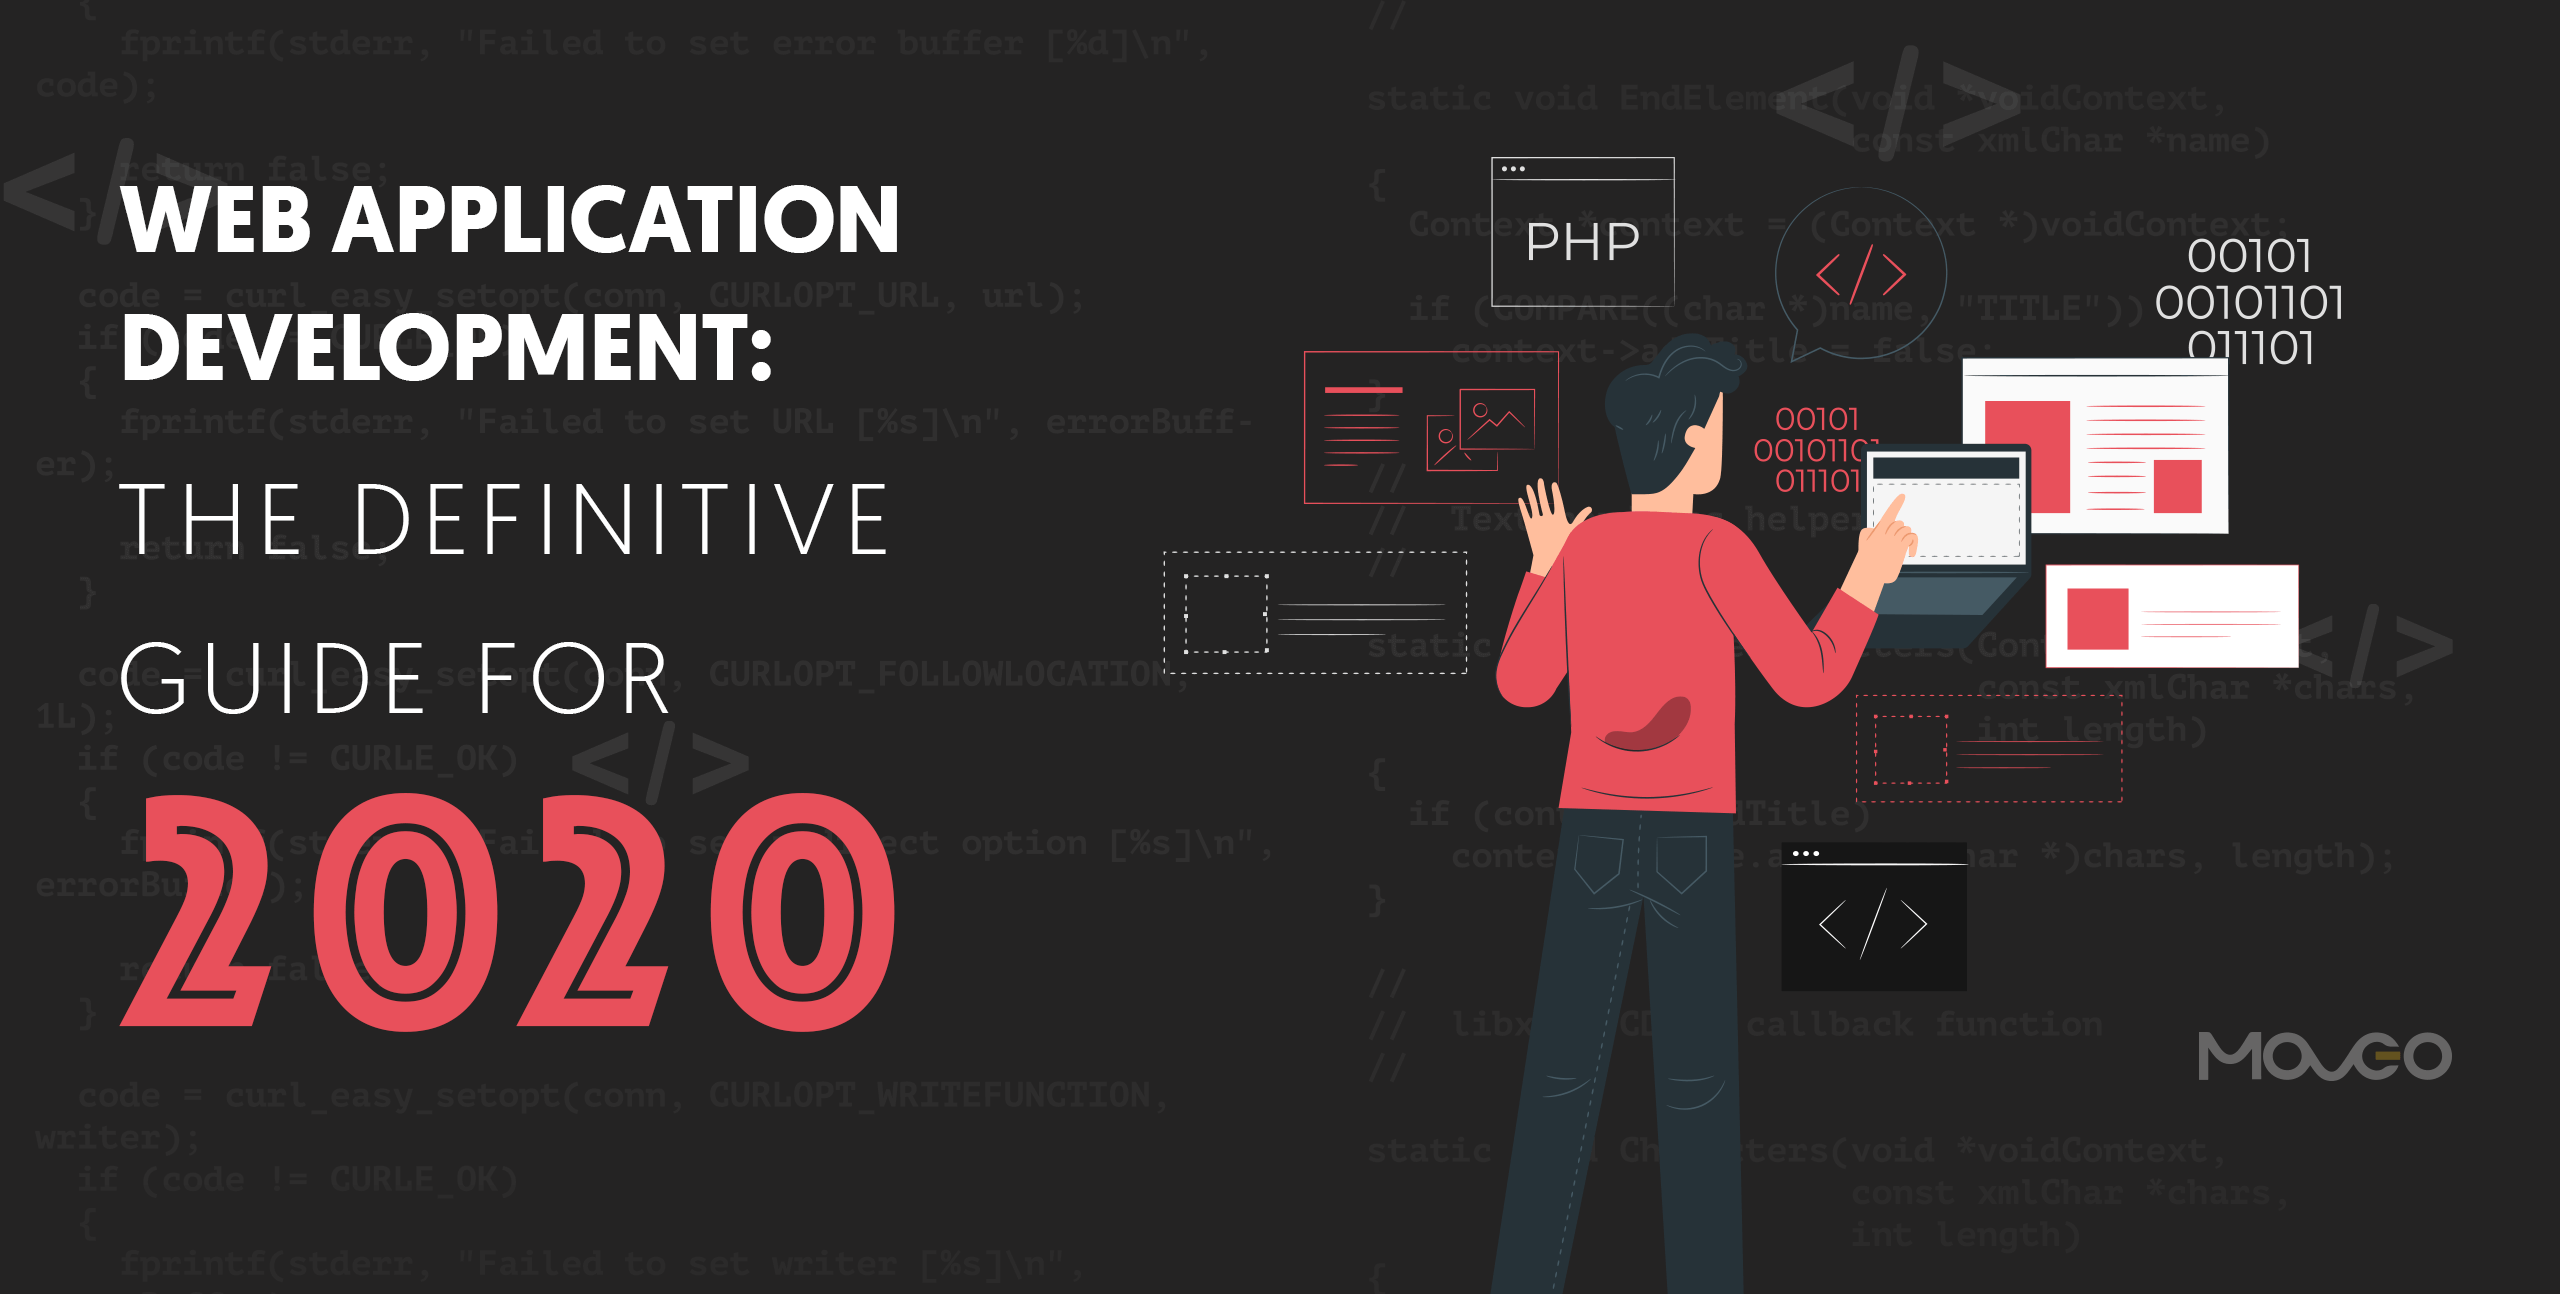 Web Application Development – The Definitive Guide for 2020